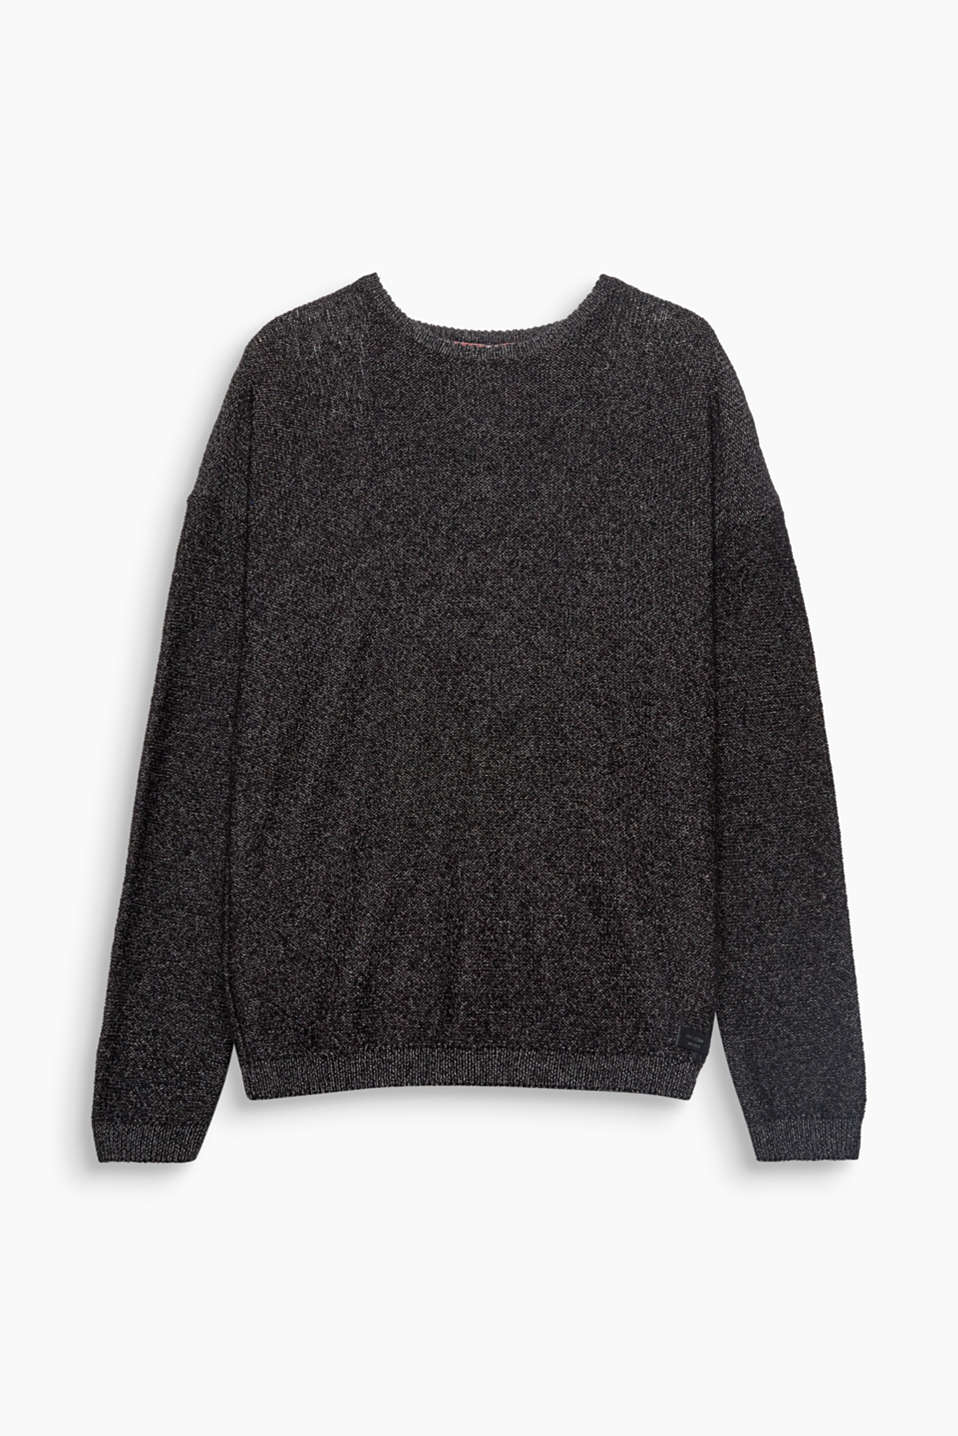 We love knitwear! This sporty jumper in blended cotton with wool comes in an understated design.